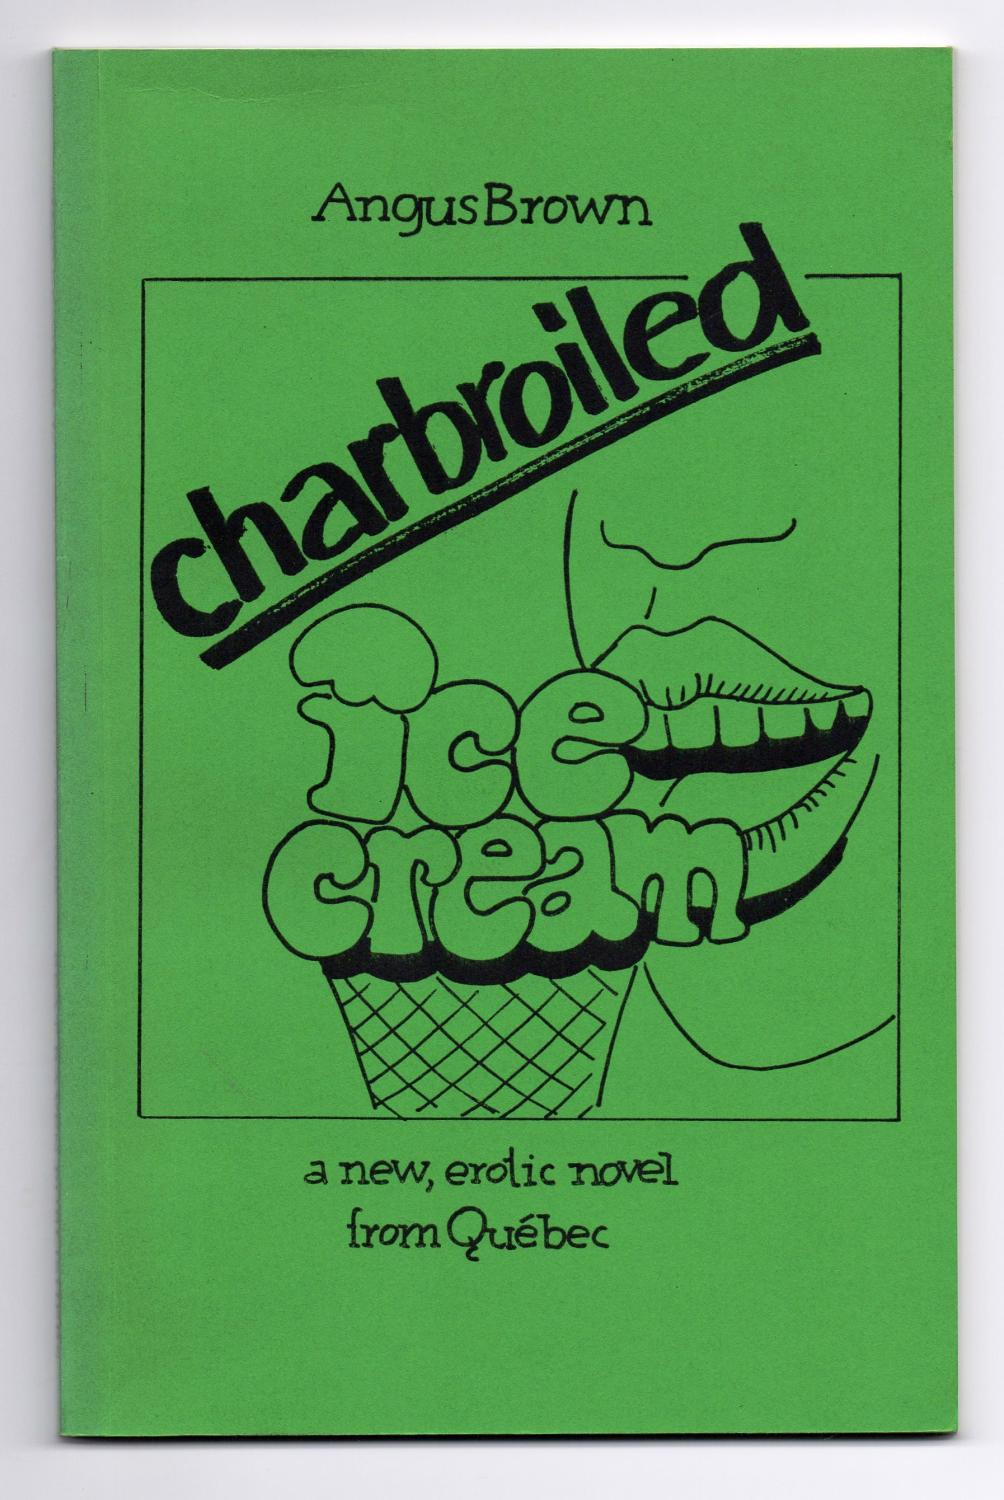 charbroiled ice cream: a new, erotic novel from Québec